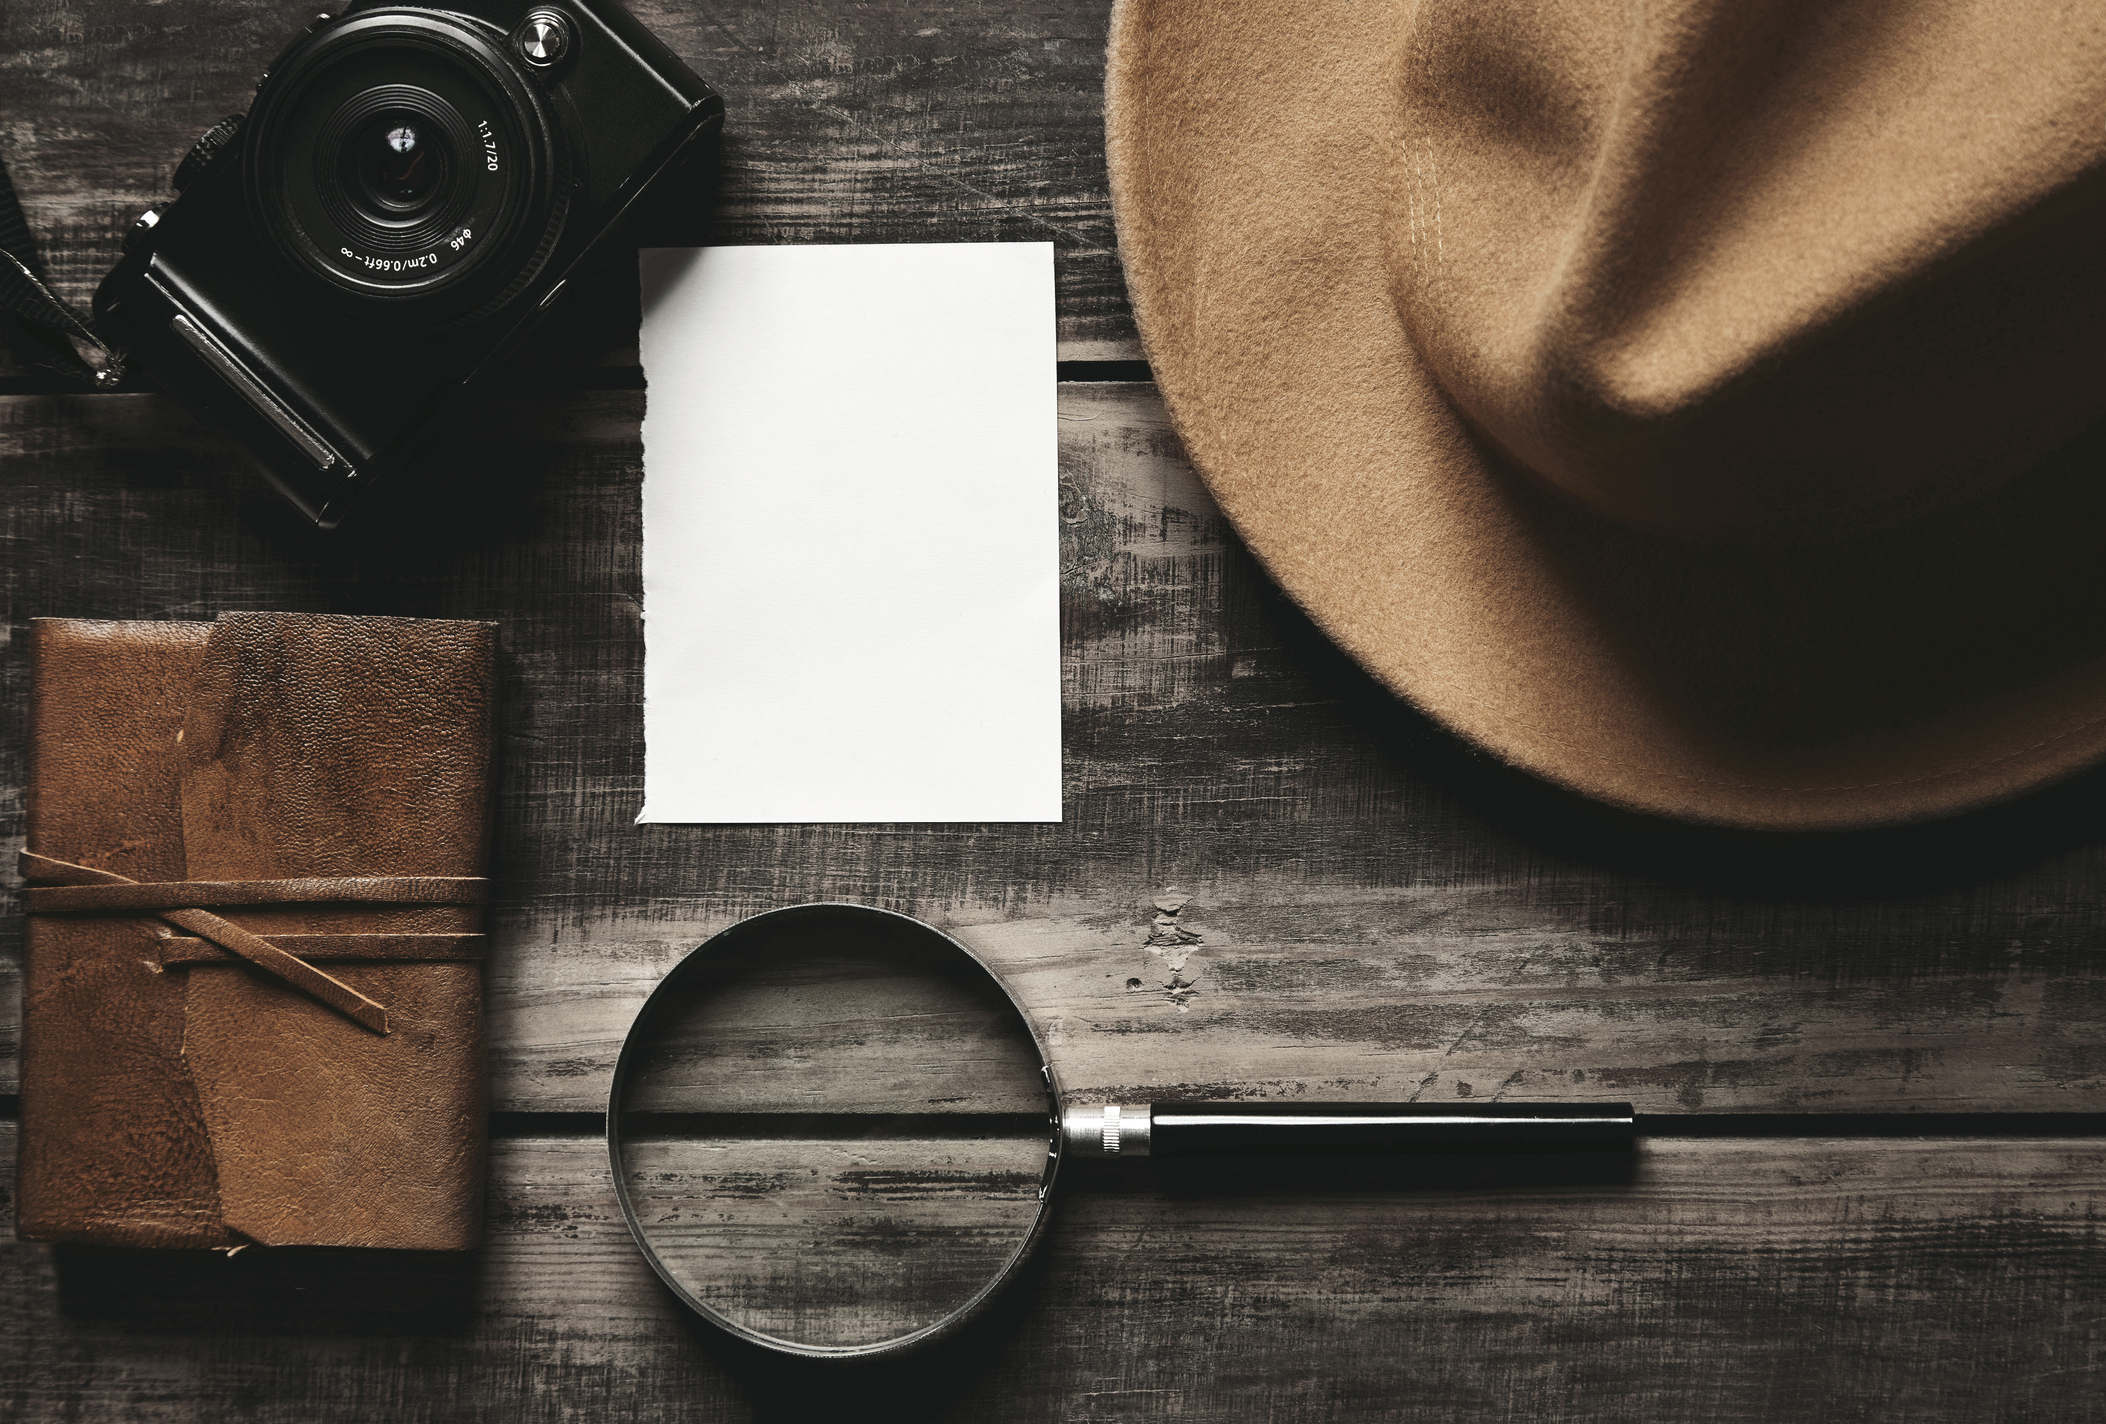 detective and criminal investigator career and salary profile